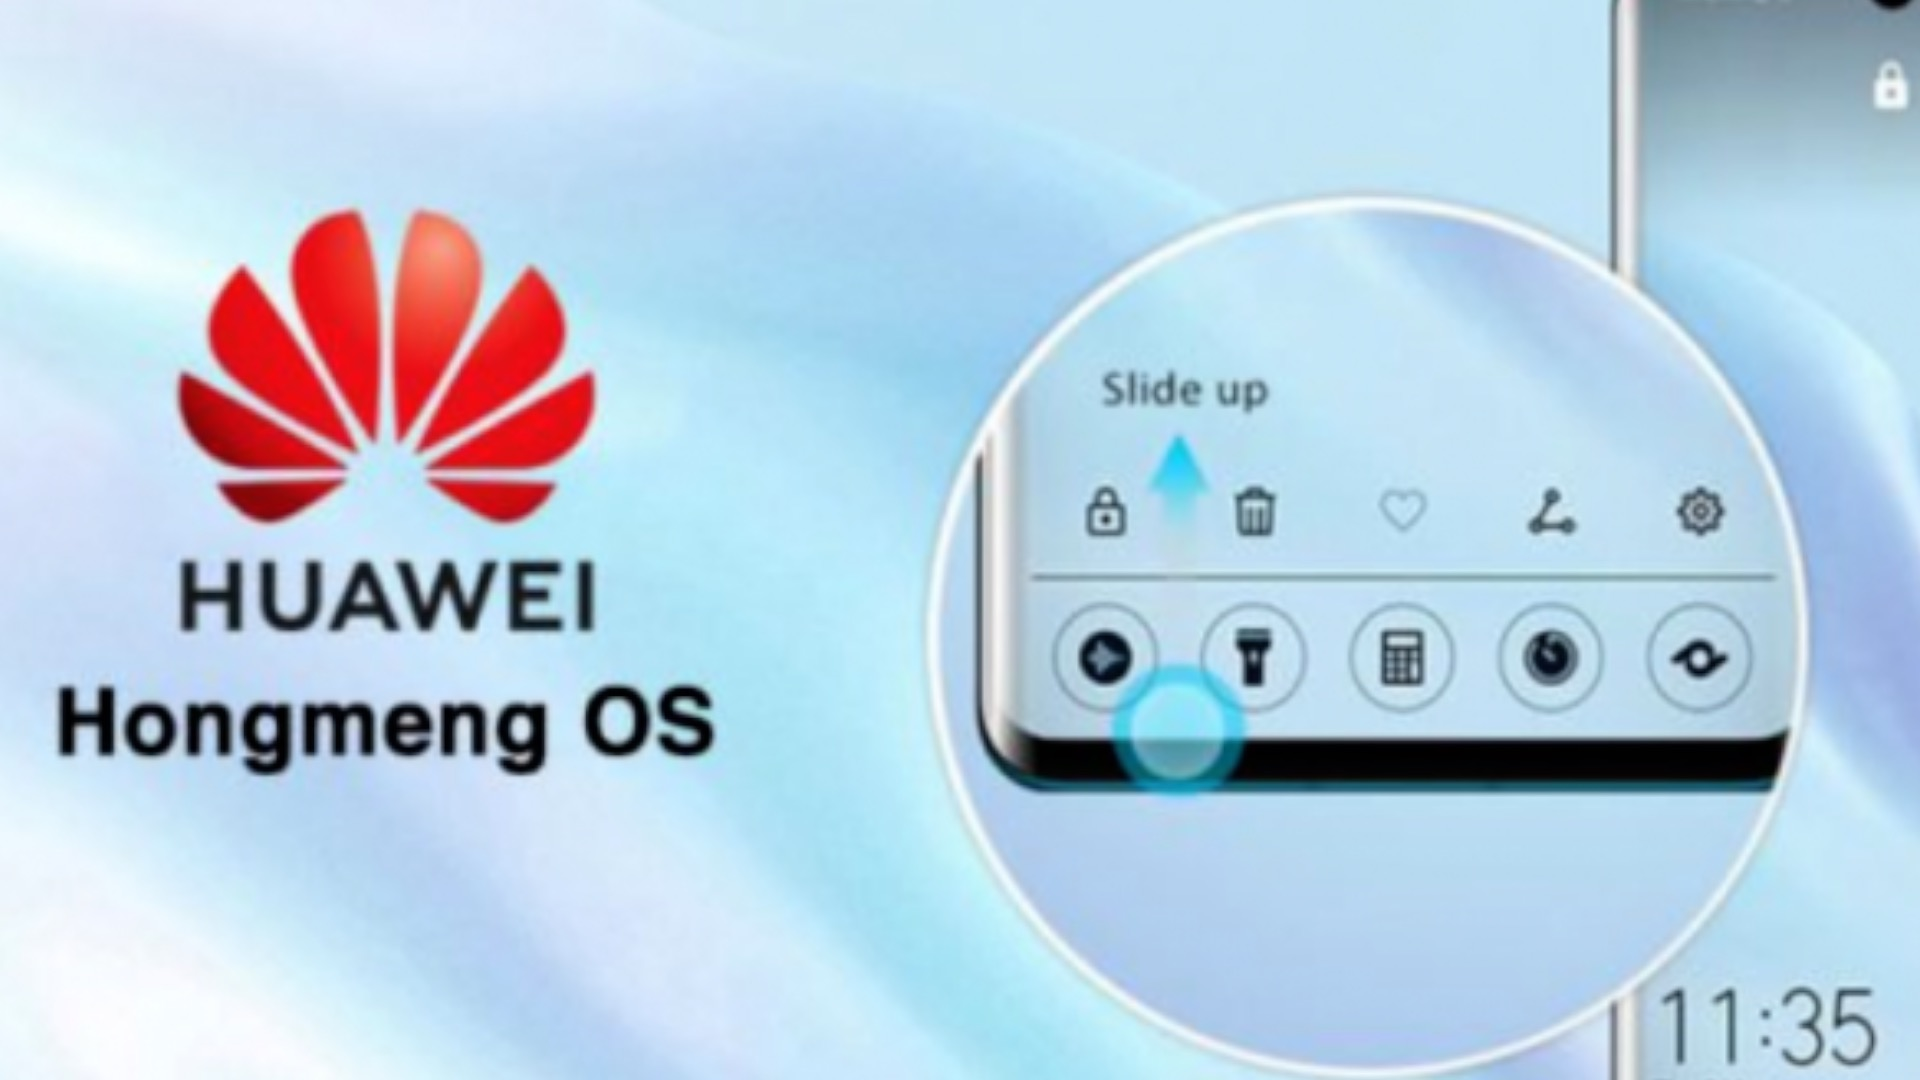 HongMeng OS is not for smartphones: Huawei wants to use Android